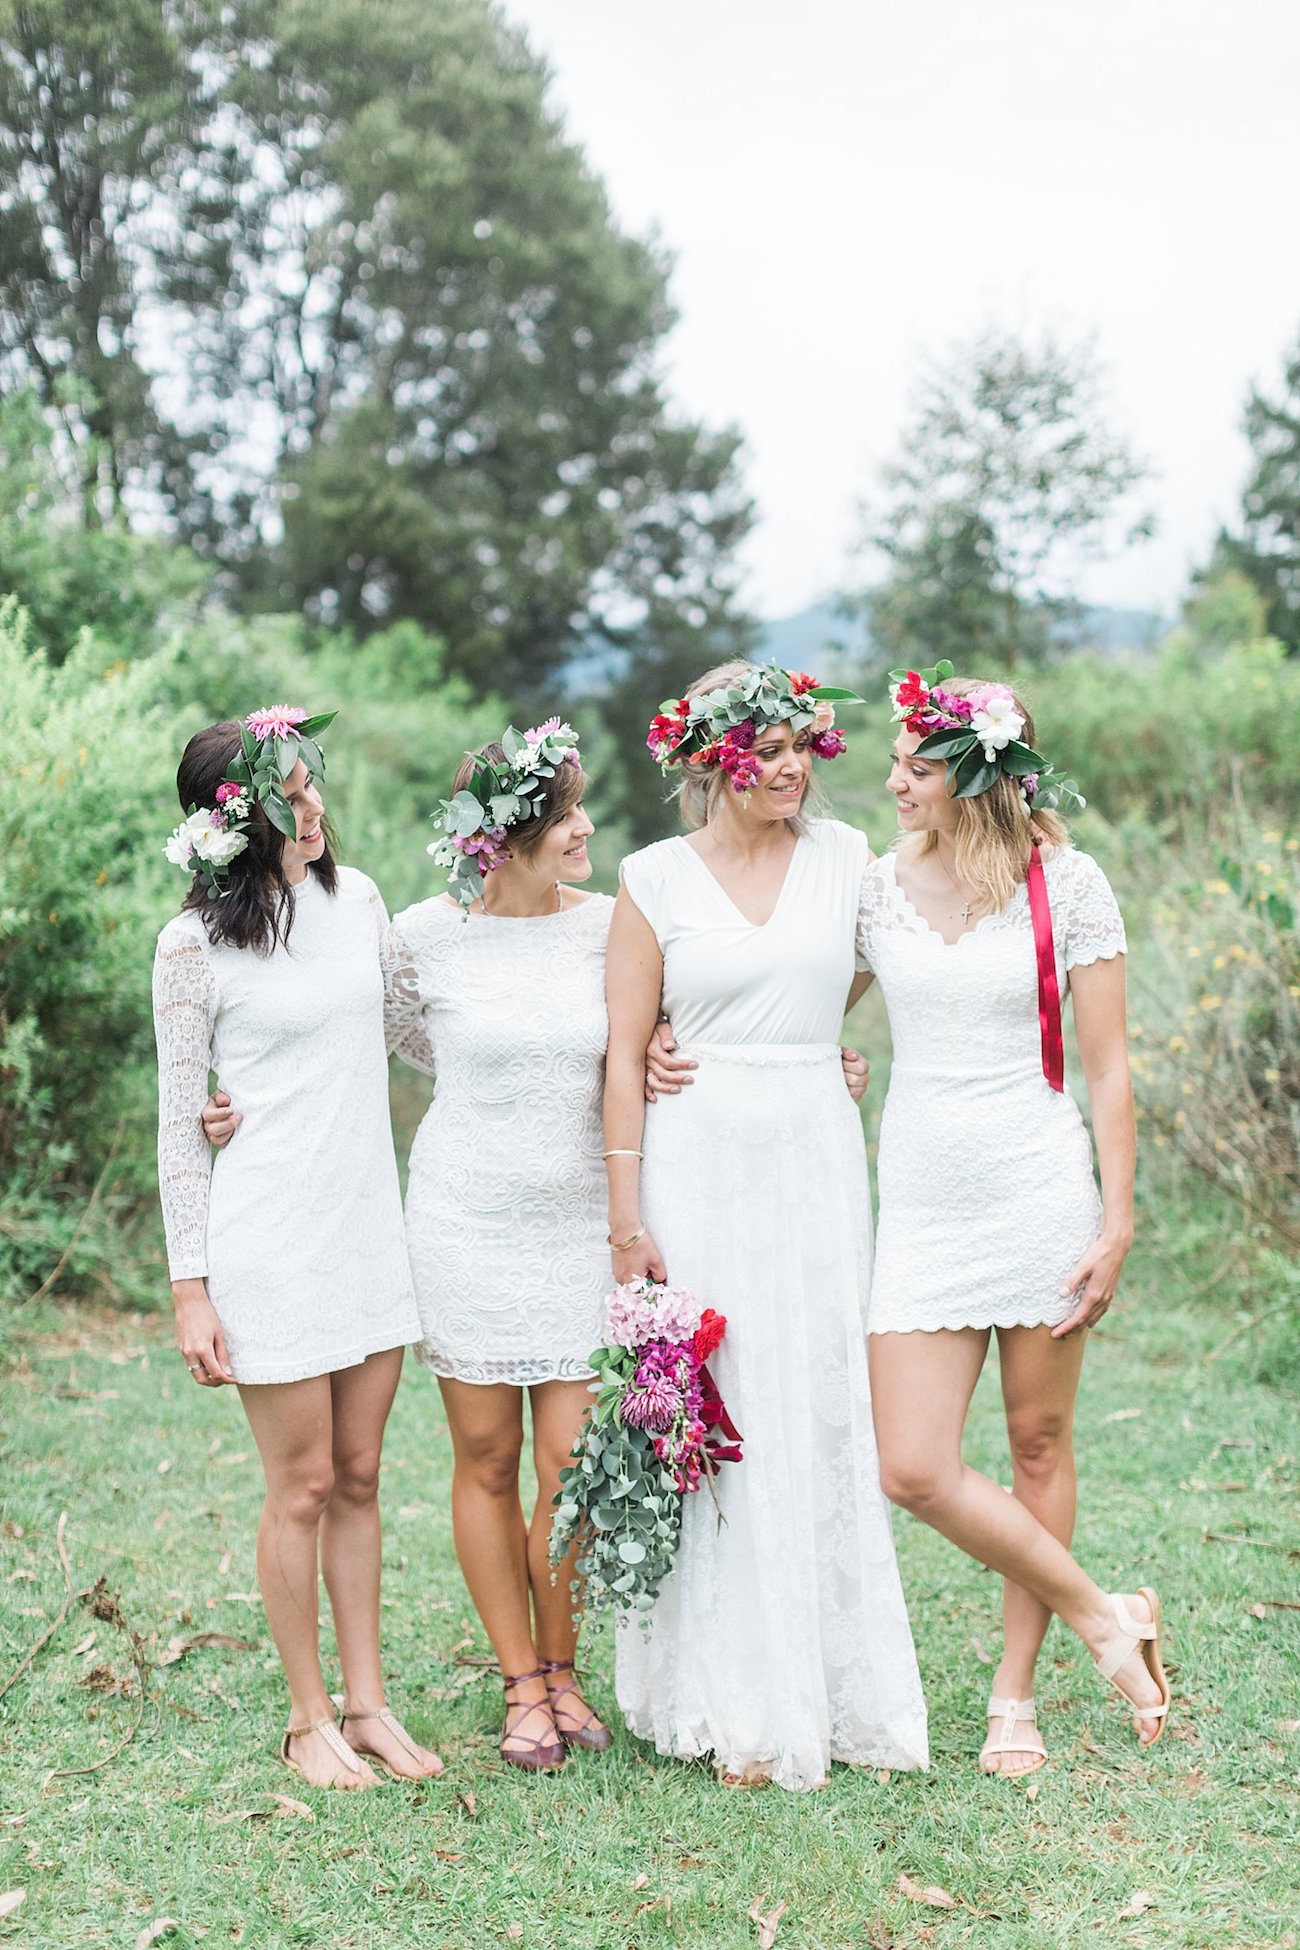 Bridesmaids in White Lace | Image: Alicia Landman